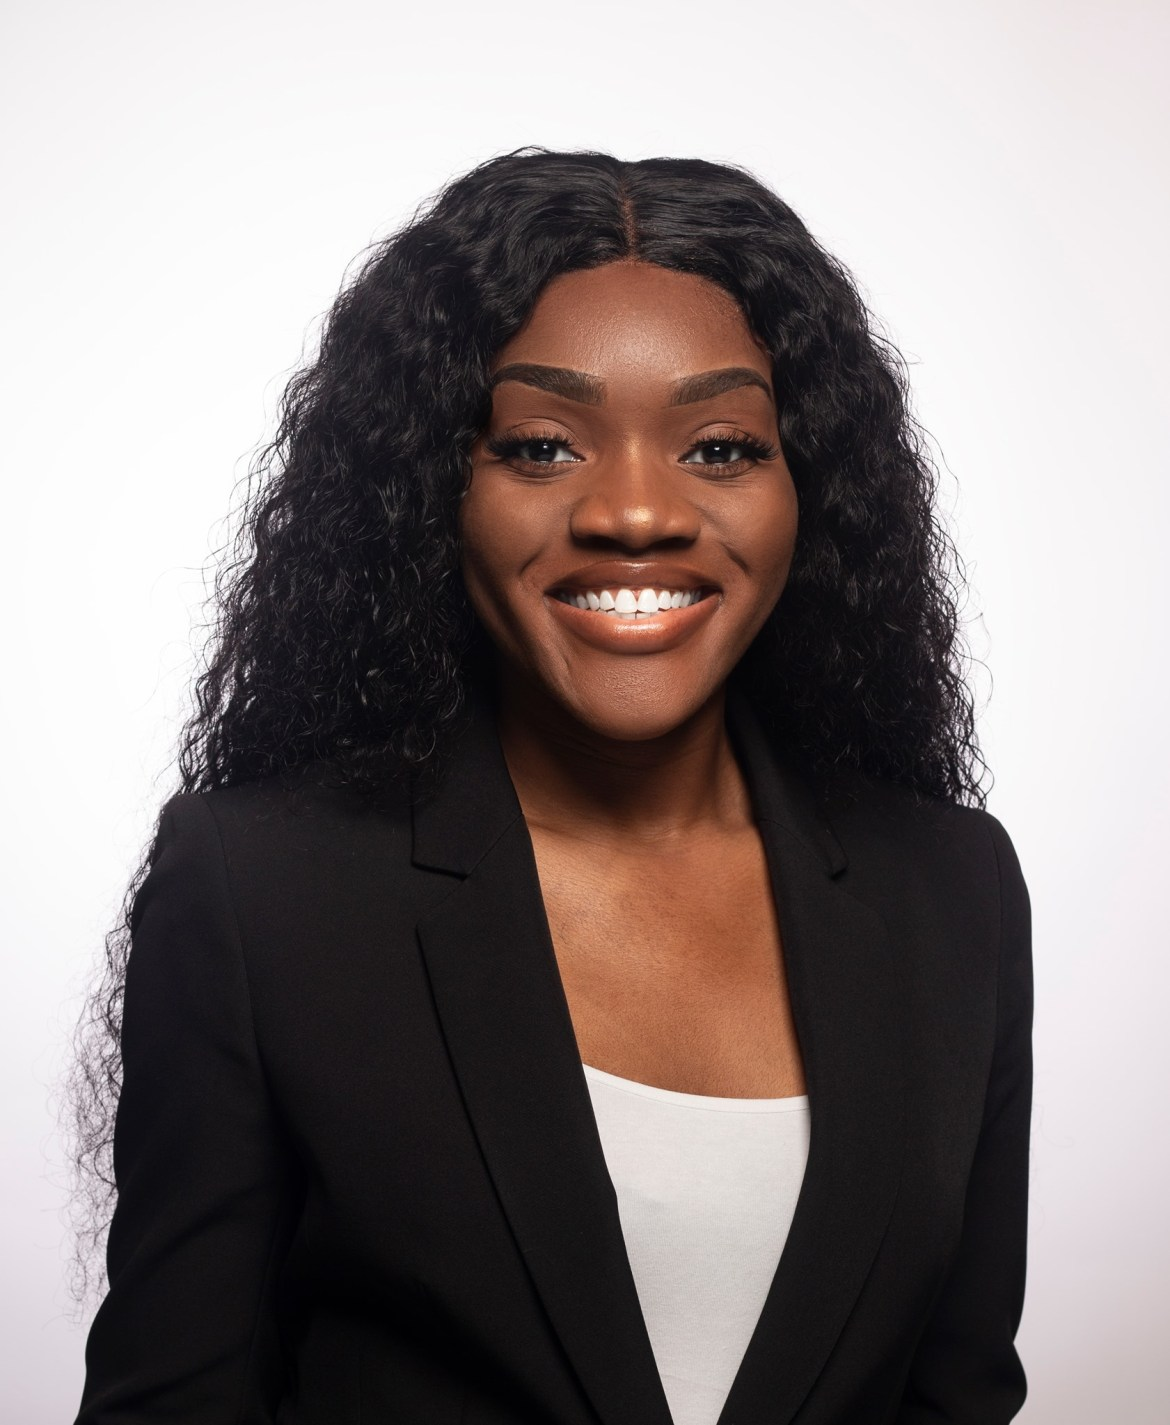 Interview With Uduak Nkanga – Candidate For Texas House District 113